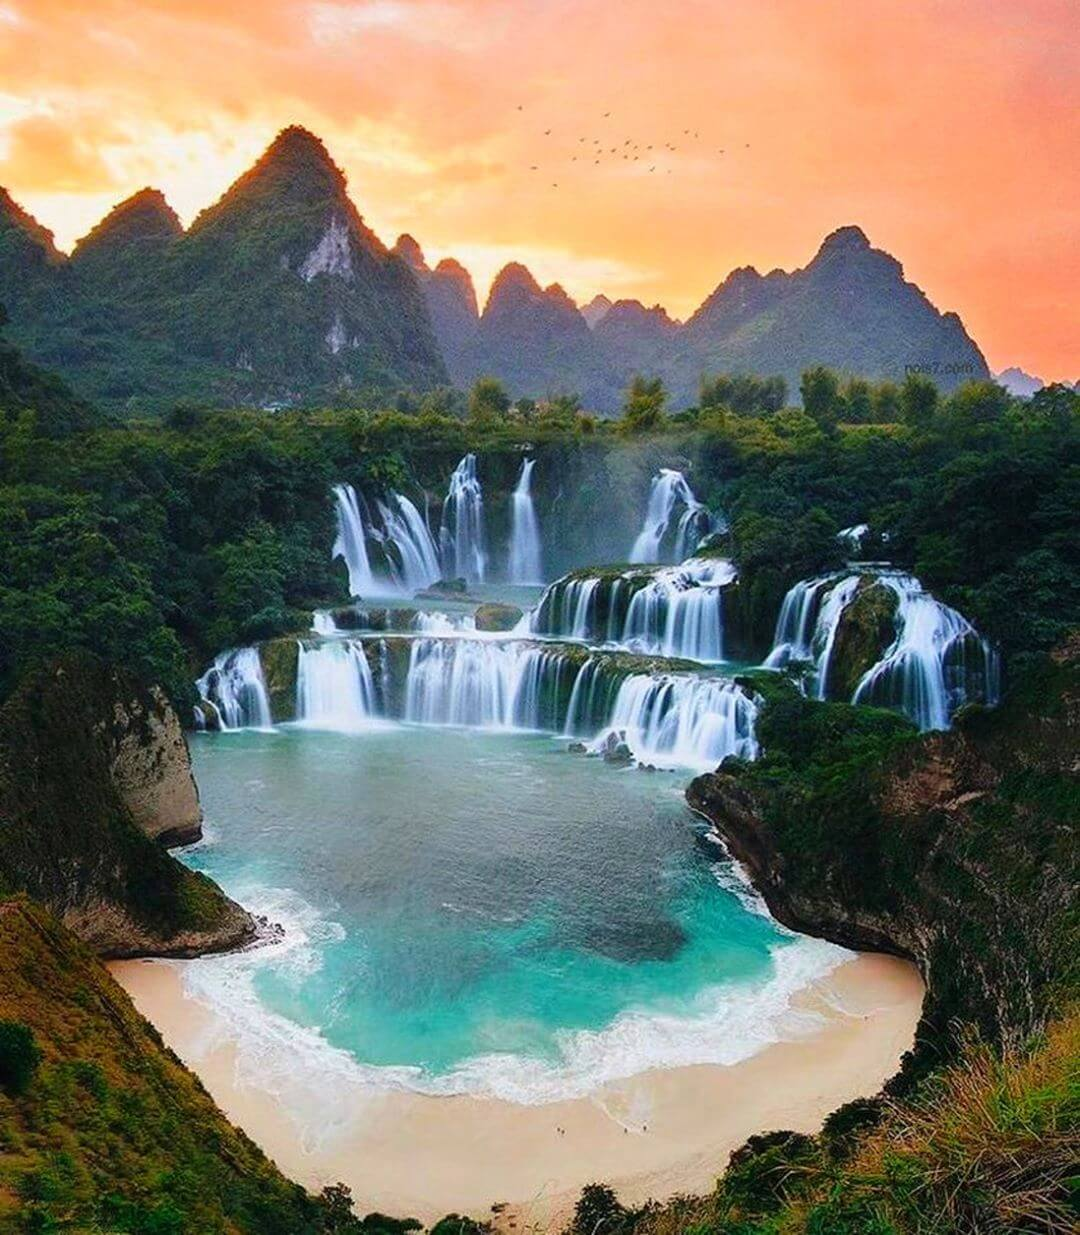 10 Greatest Waterfalls in the World